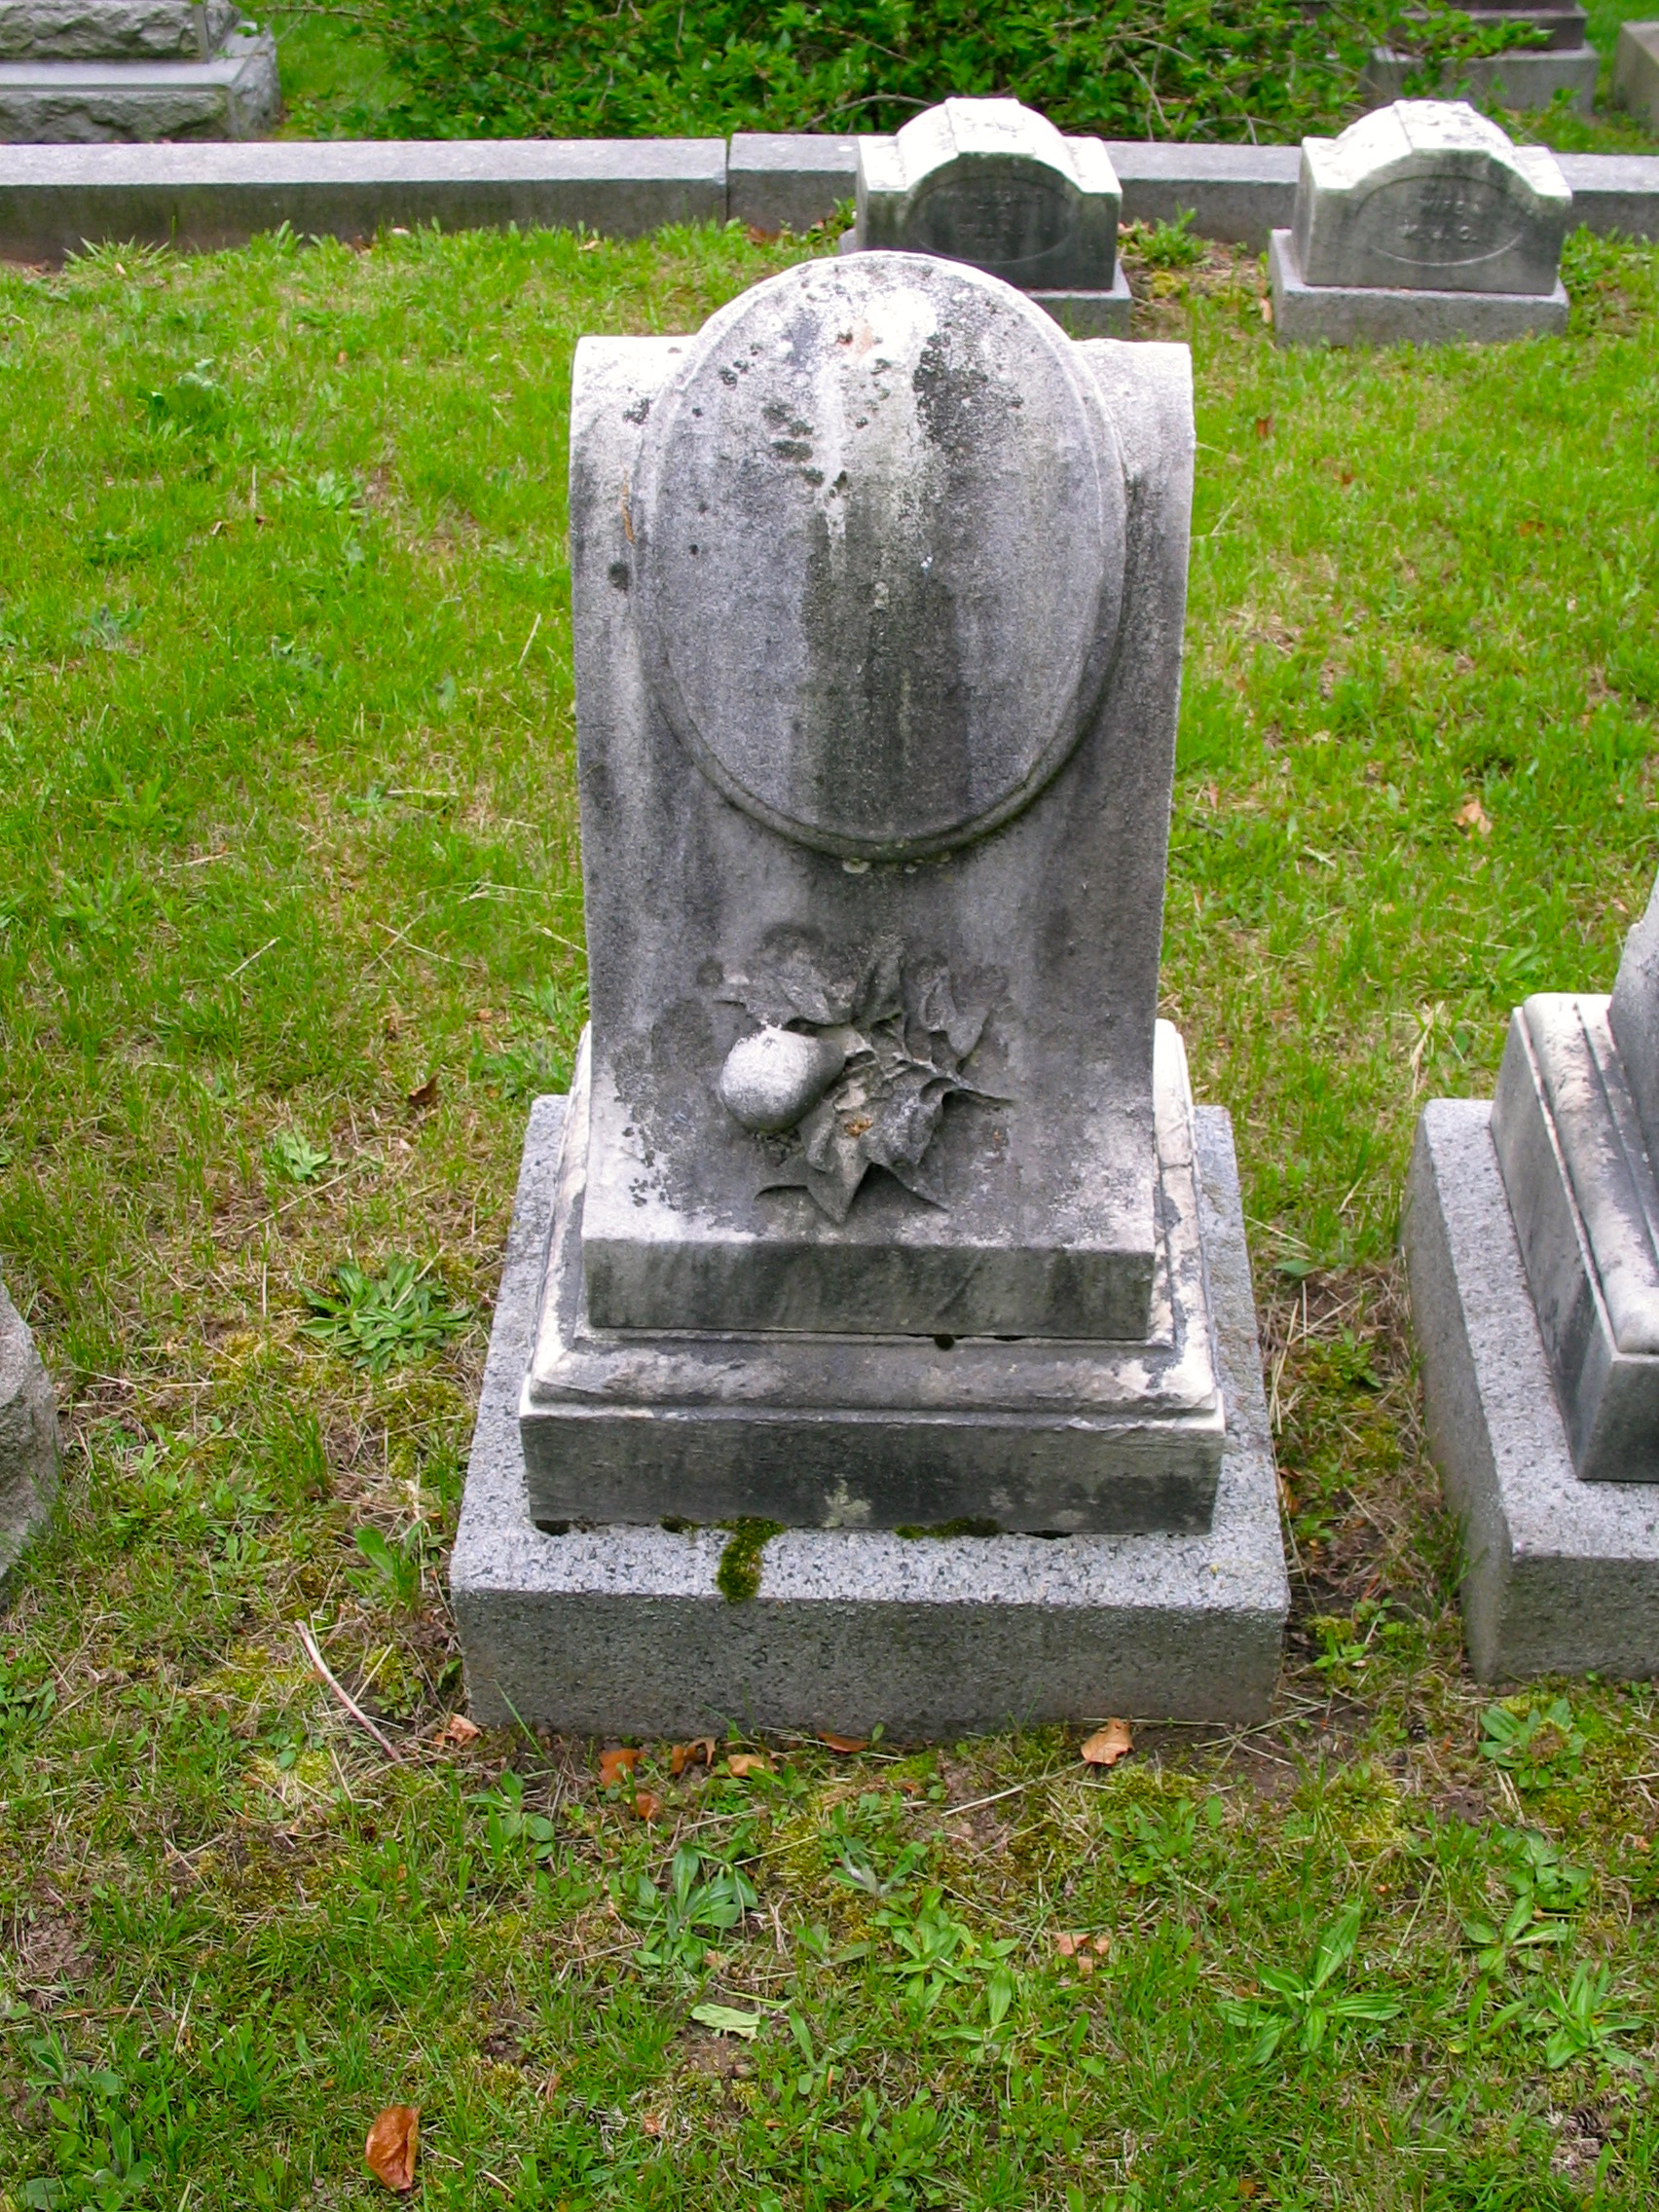 The Thaddeus Clapp headstone in Forest Hills Cemetery shows his famous pear.